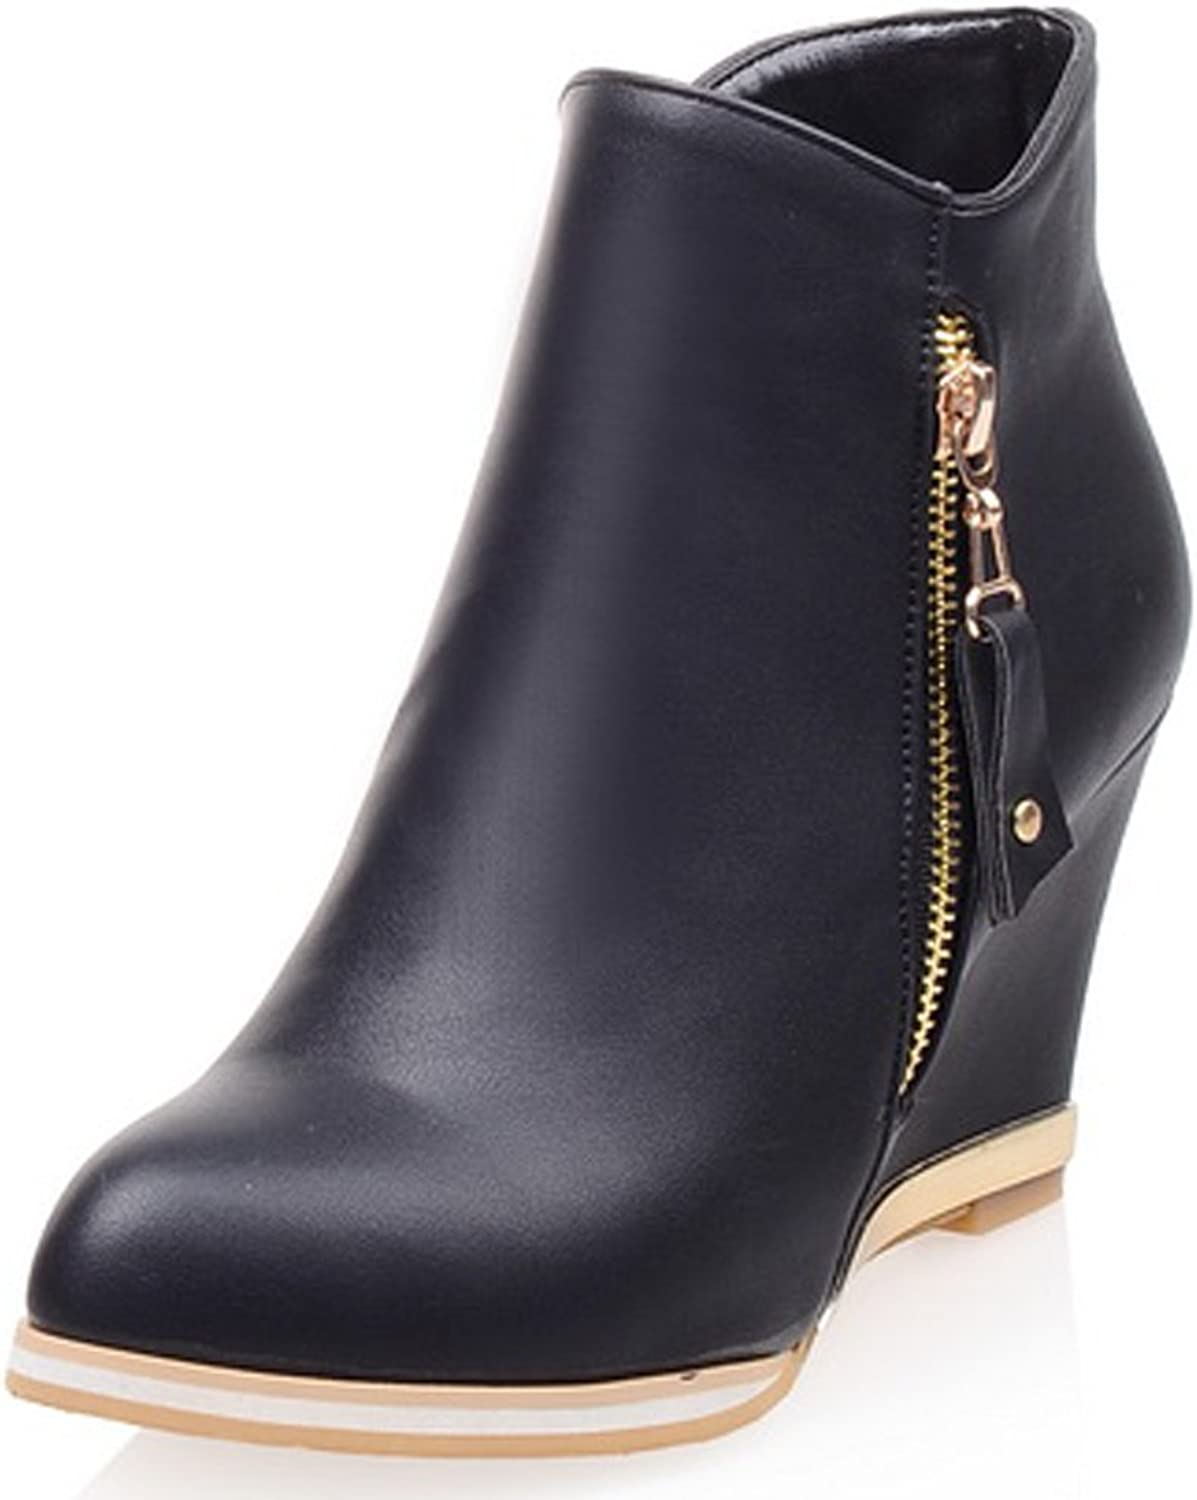 AIWEIYi Womens Round toe Wedges shoes Back Zip High Heel Winter Snow Ankle Boots